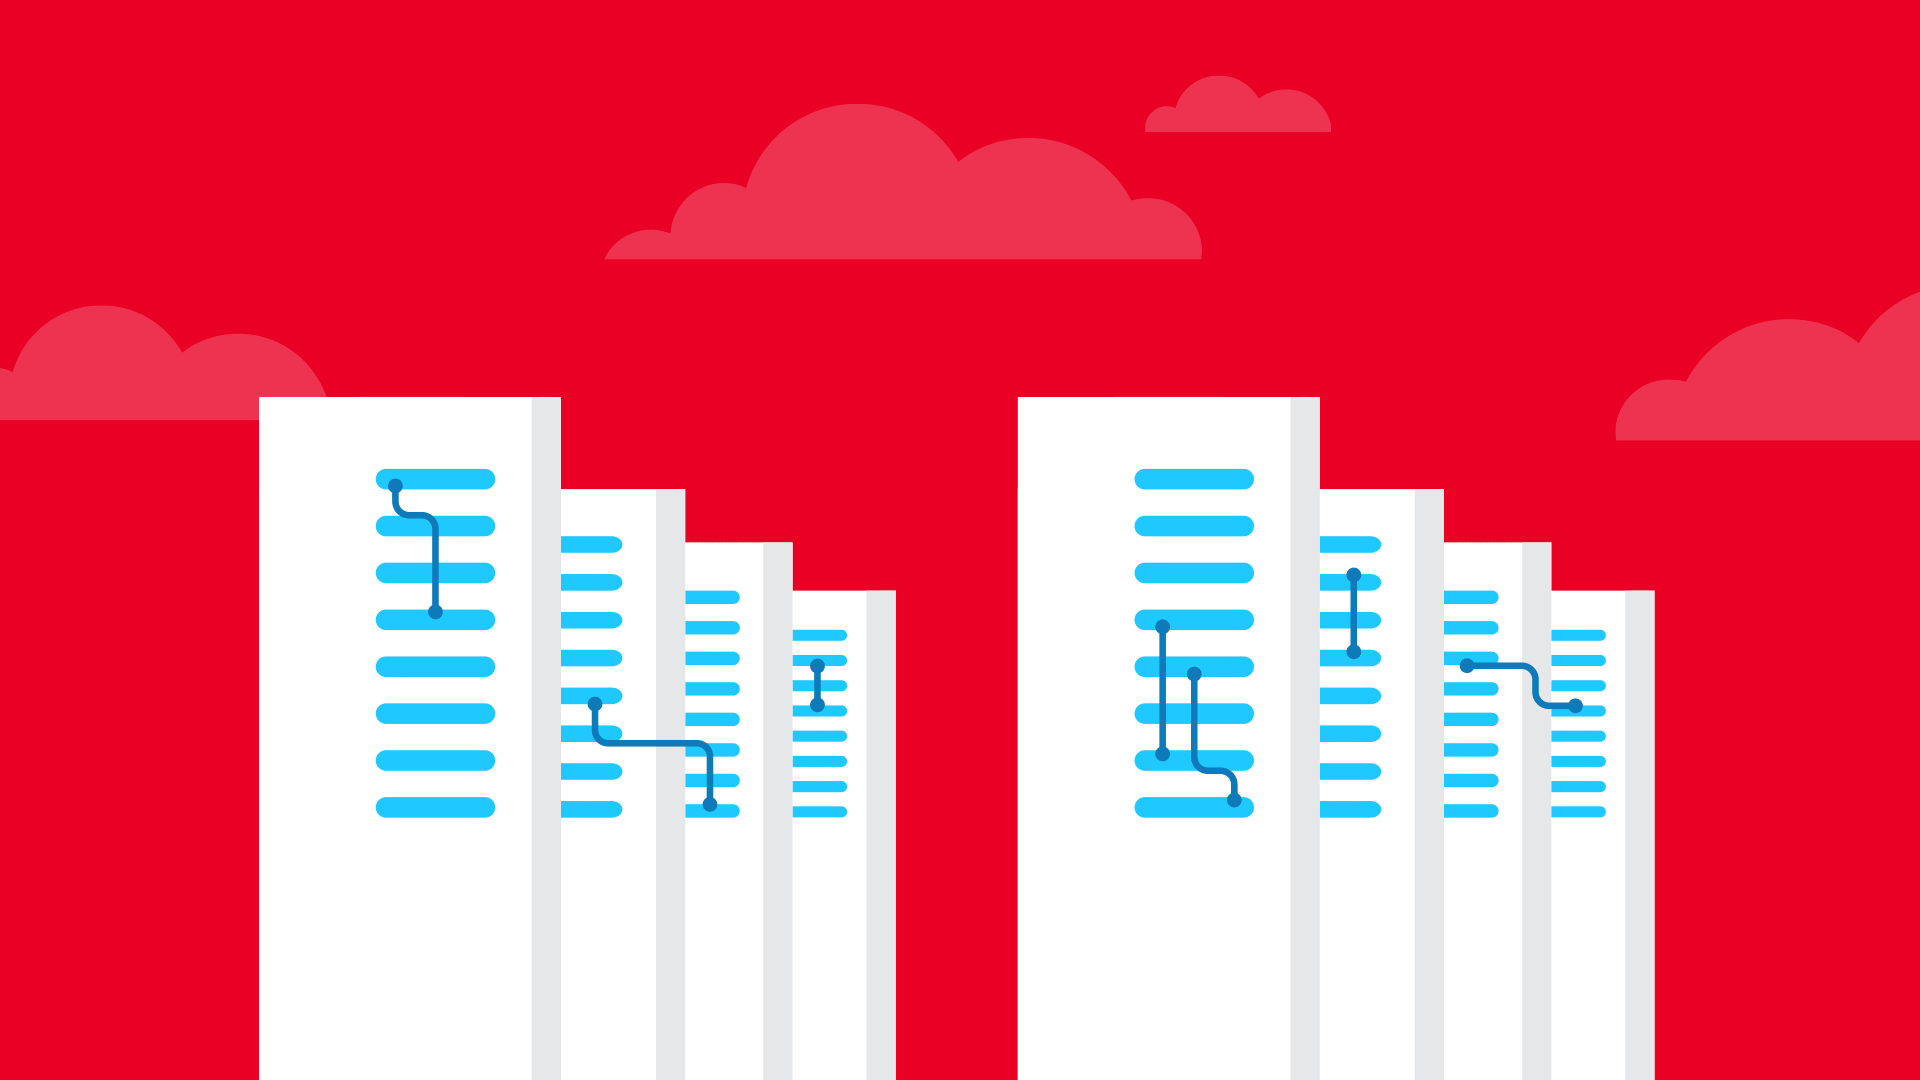 9 Interesting Stats on the Growth of Data Centers